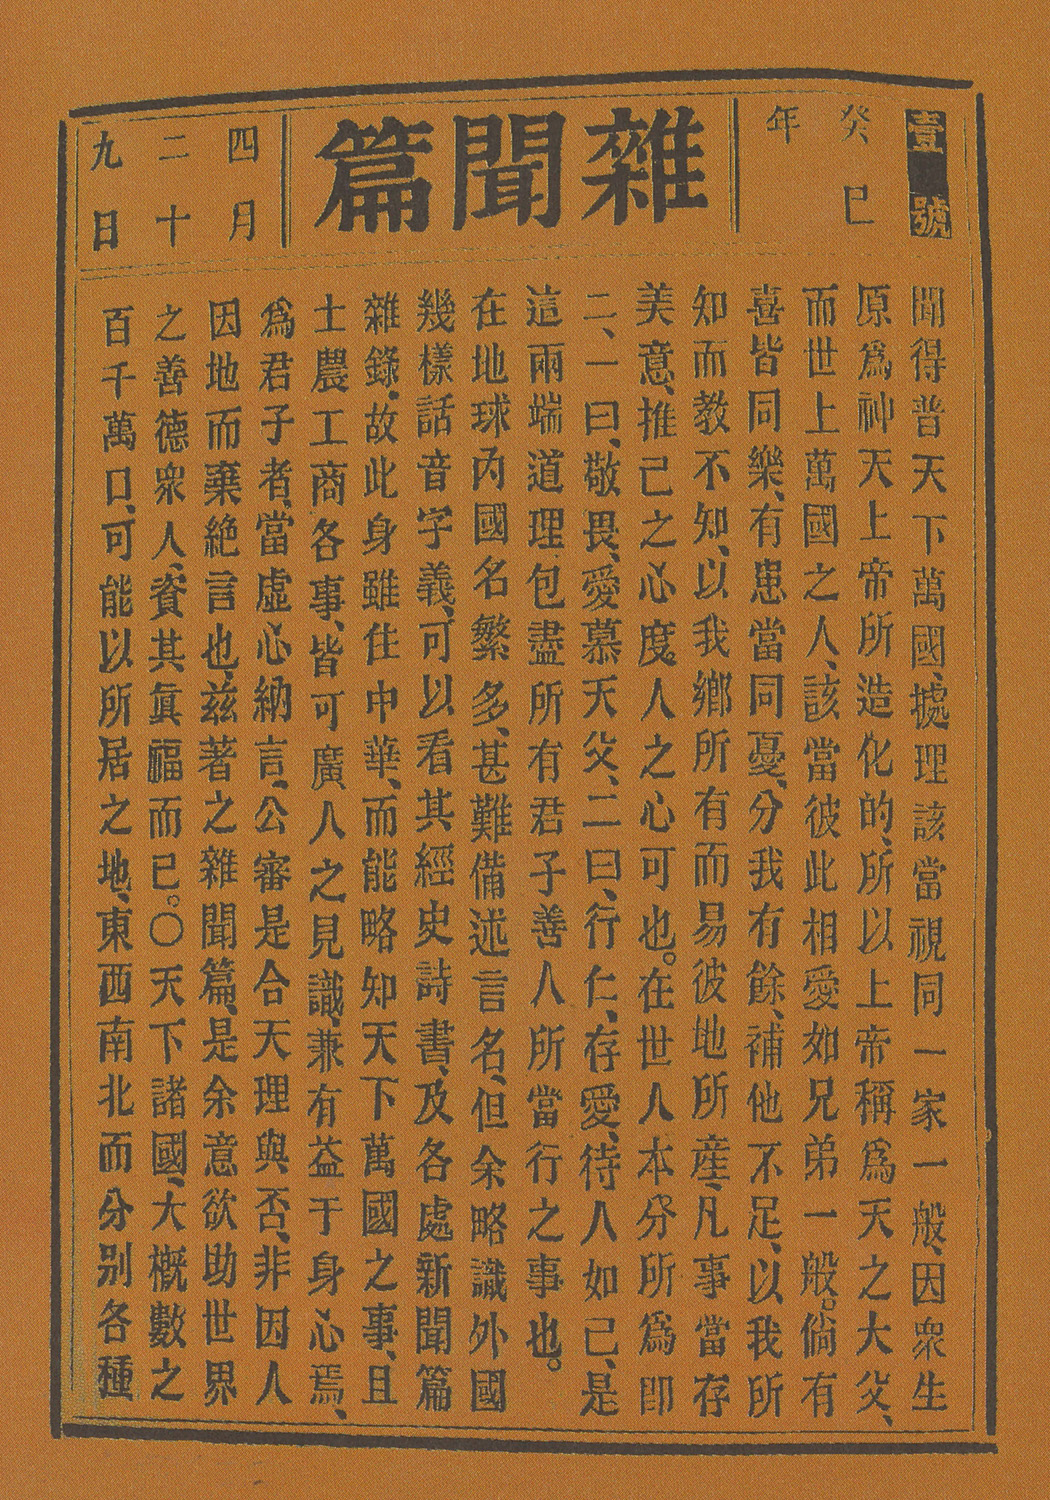 The maiden issue of A Miscellaneous Paper, the first Chinese newspaper ever published in Macao, and also the first modern Chinese paper published in China.